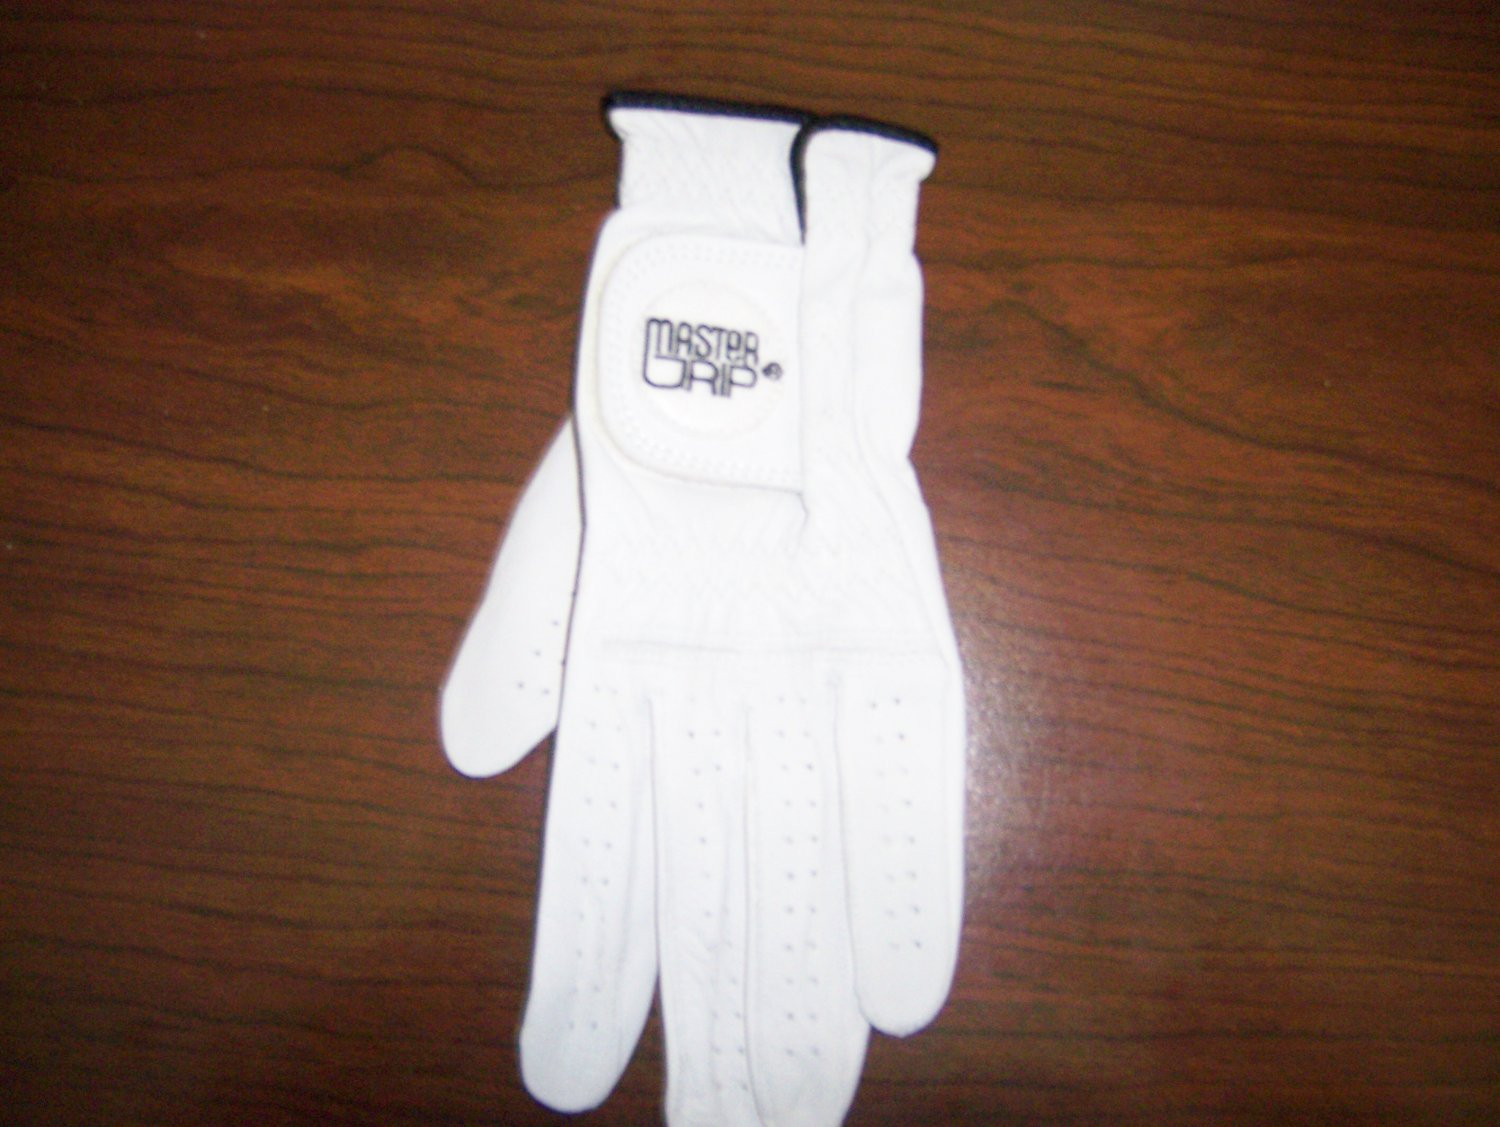 Ladies Golf Glove L Hand Med. Cabretta Leather by Master Grip  BNK1481